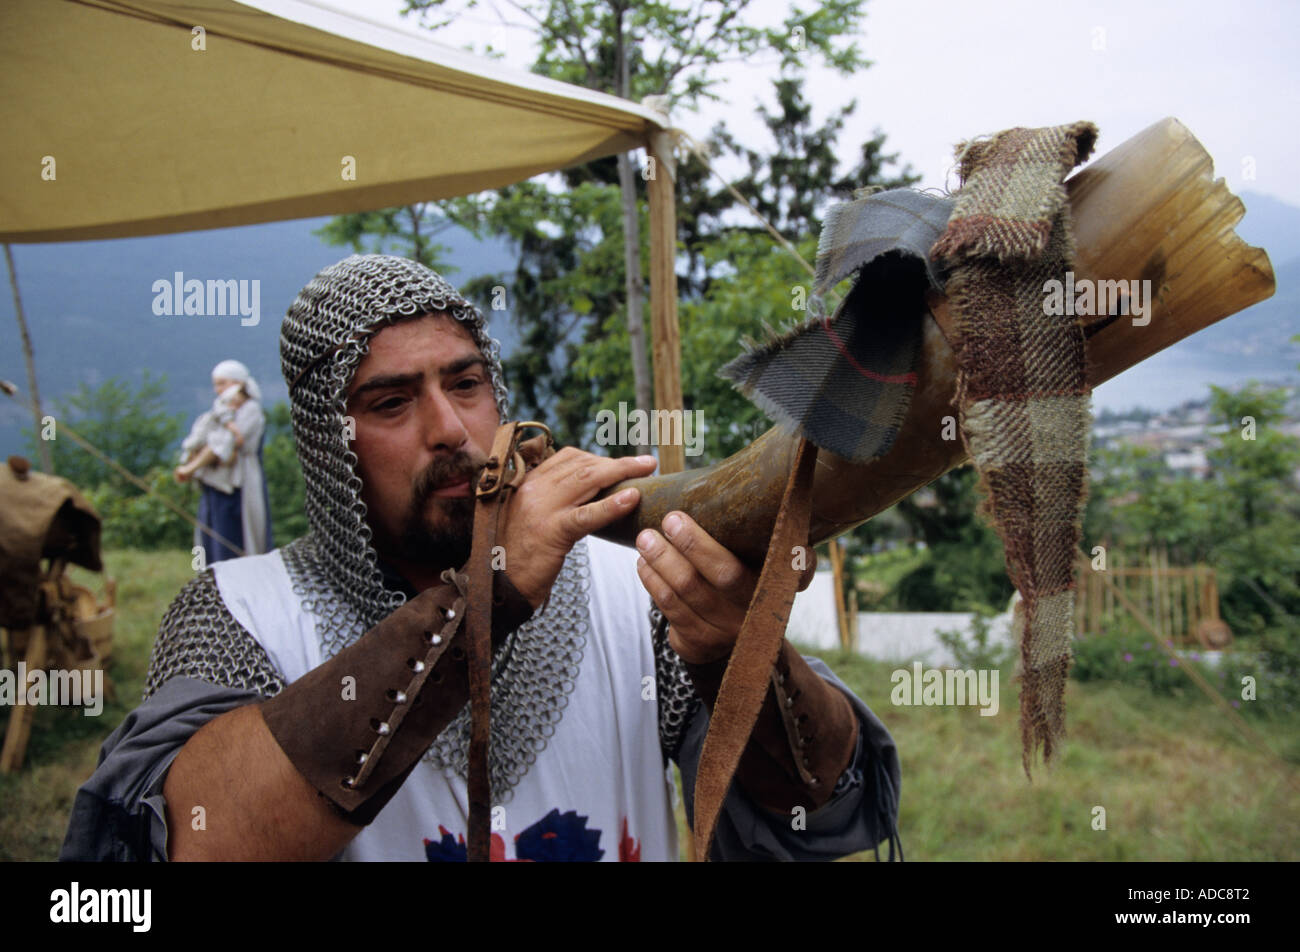 A horn blower during the traditional historic evoking of the Middle Ages in Sale Marasino, Italy - Stock Image